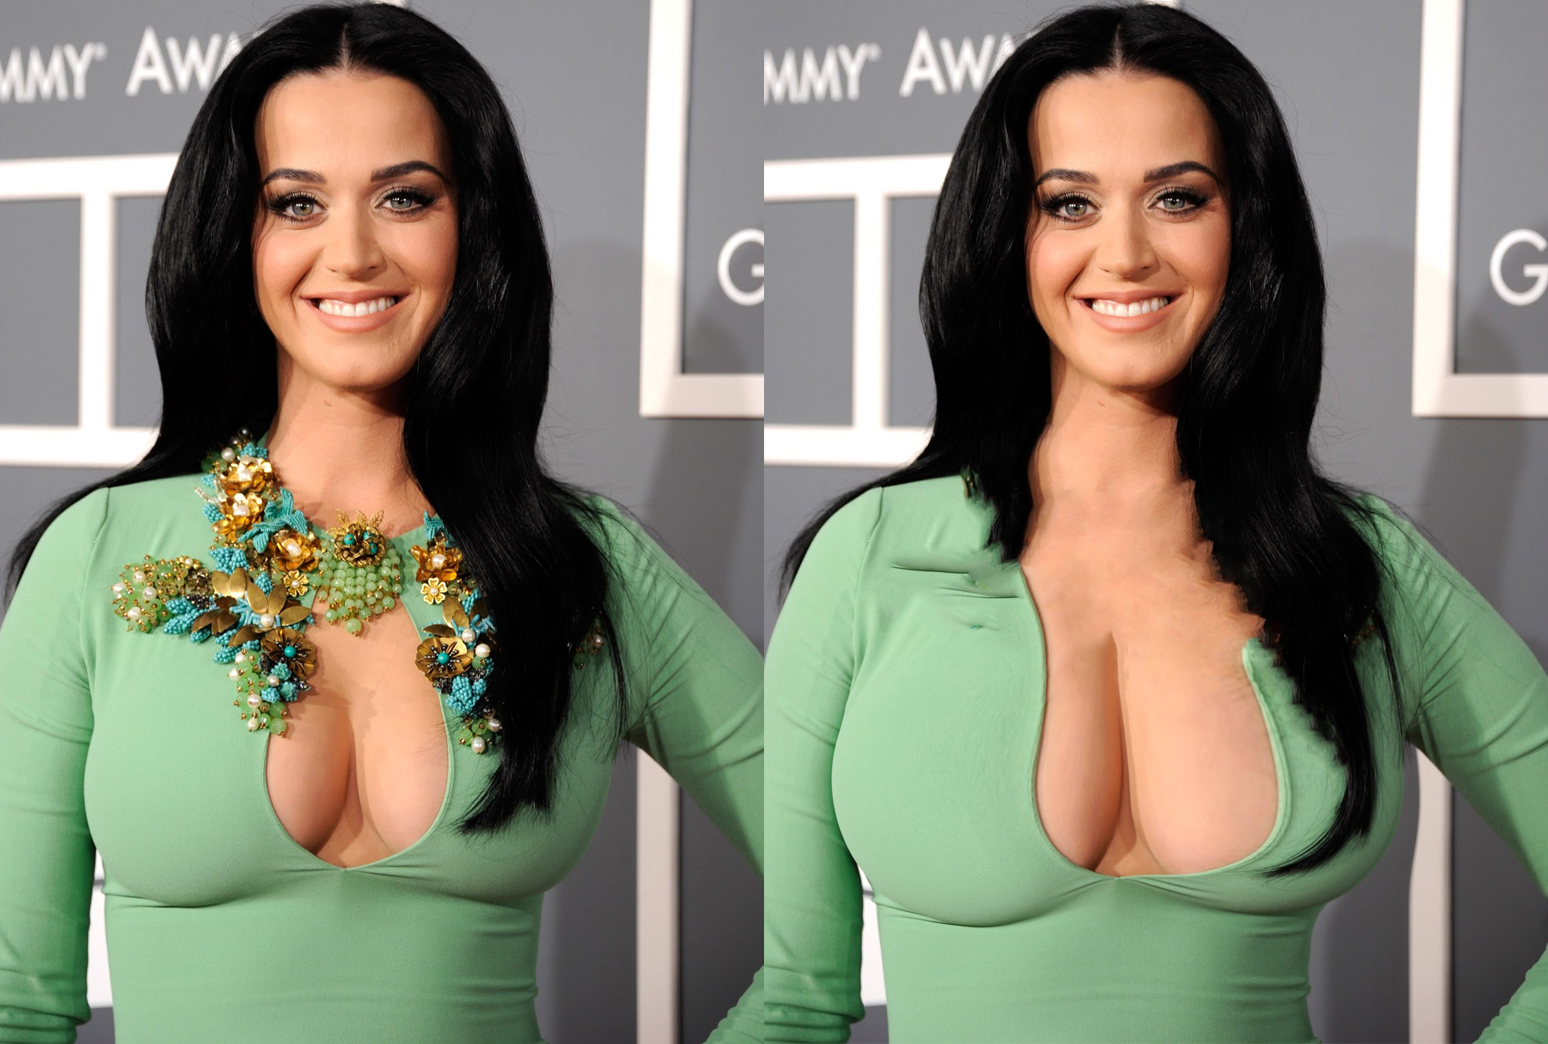 perry breasts Katy